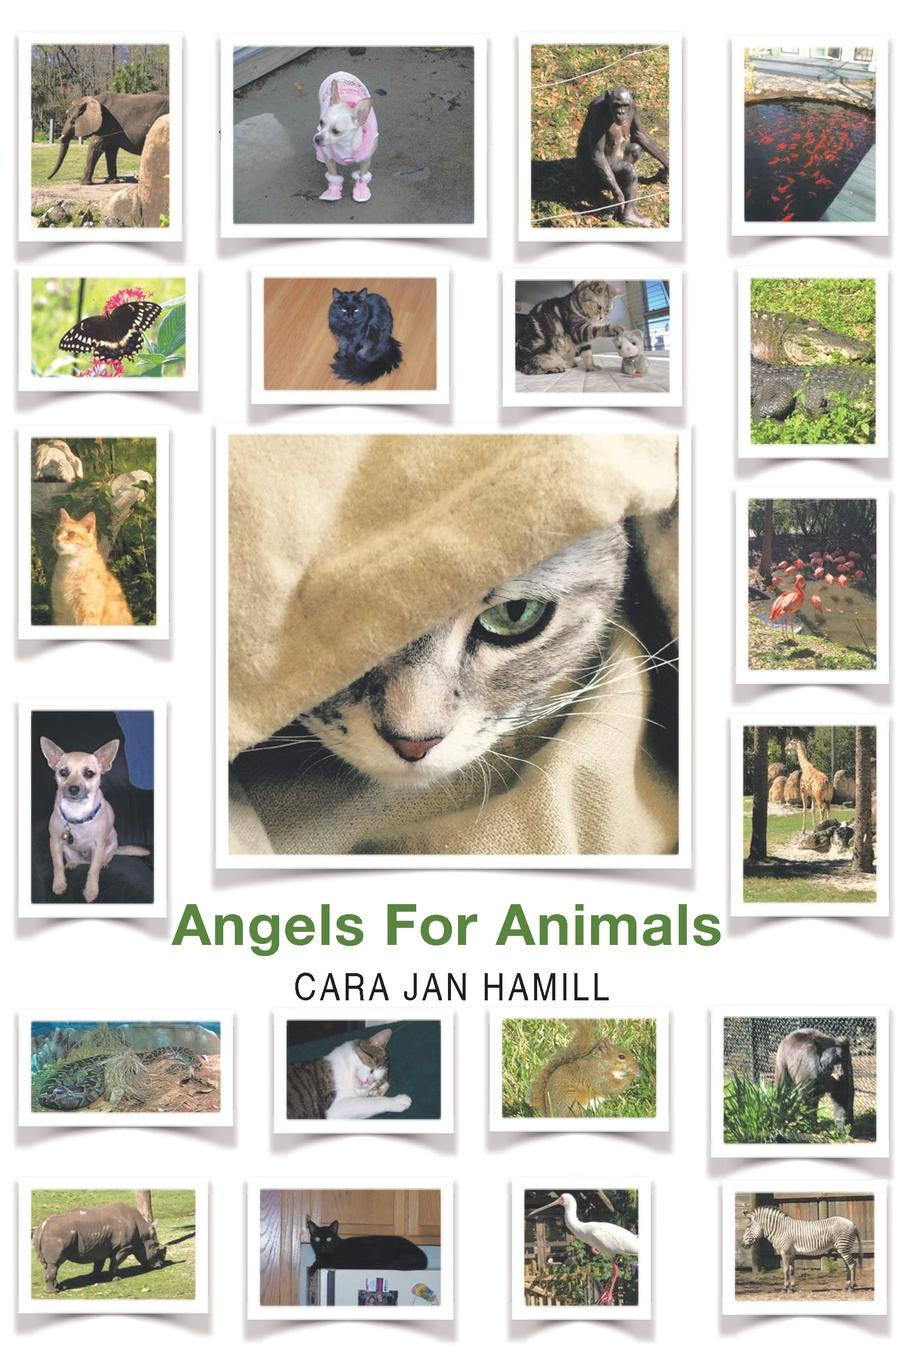 Cara Jan Hamill Angels for Animals alan webster hope for the future people who make a difference